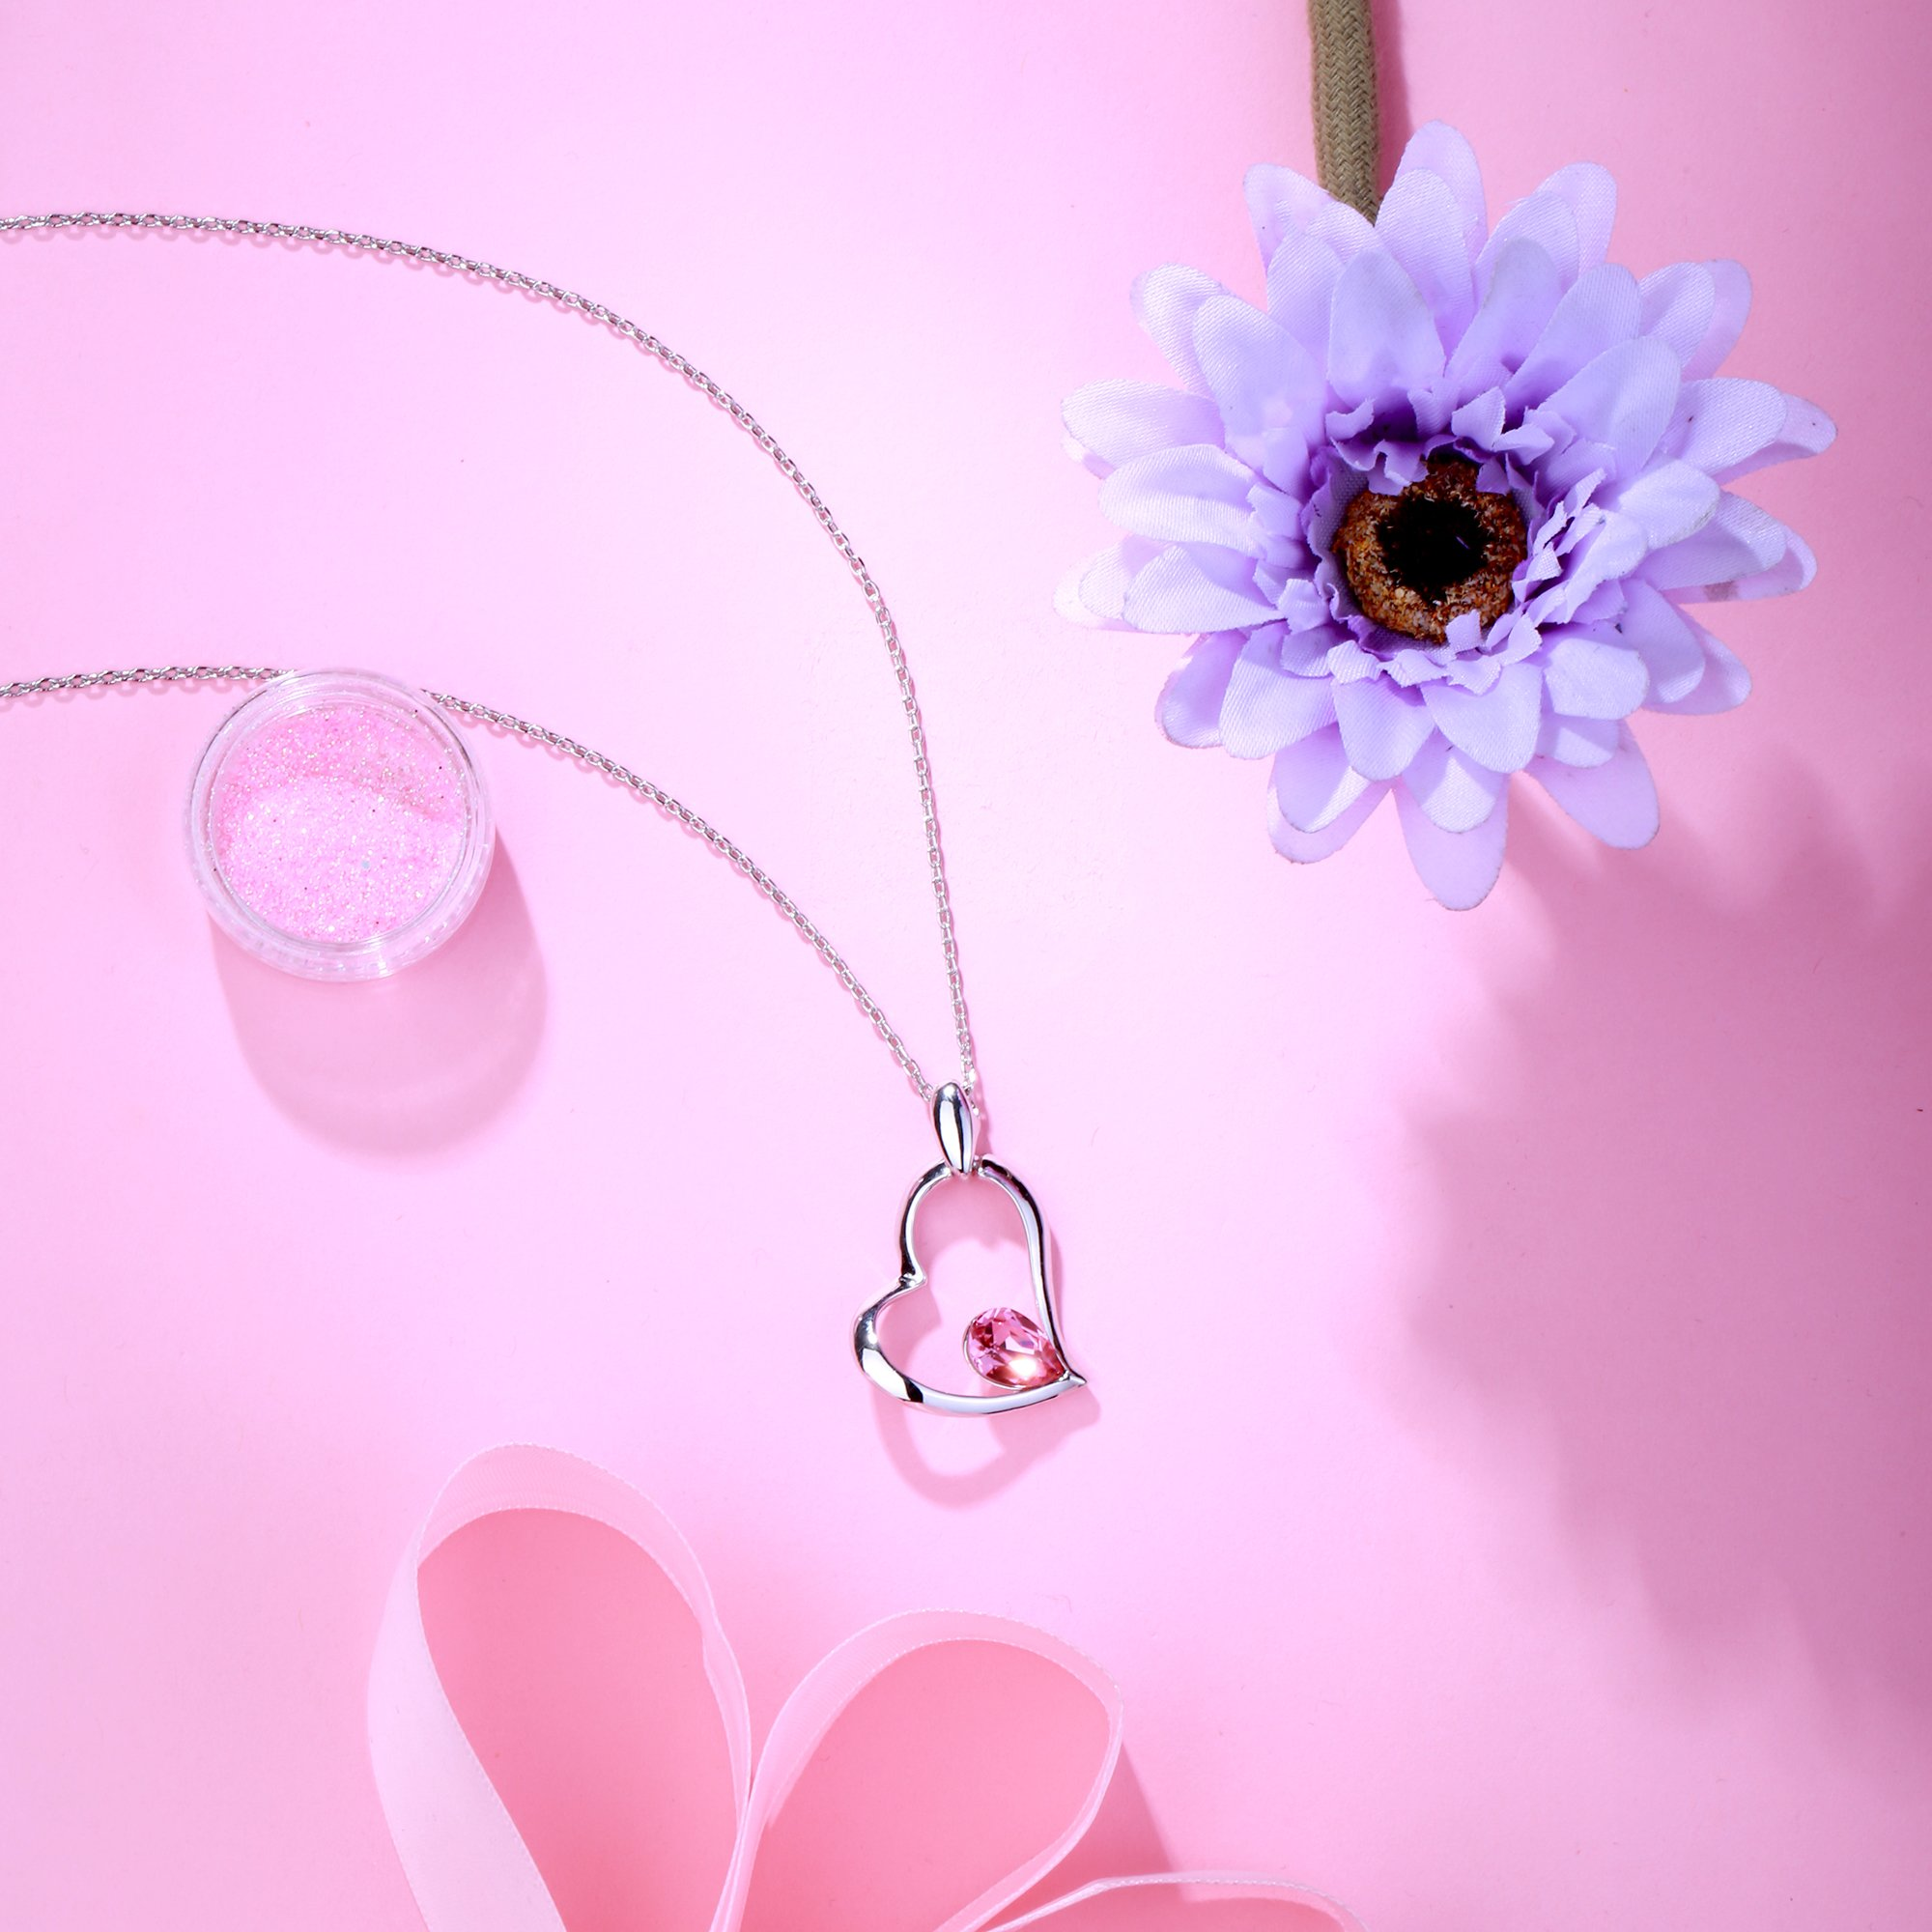 GEORGE · SMITH Romantic Memory Series Stuck in My Heart Love Pendant Necklace with Swarovski Rose Crystal Birthday Wedding Jewellery for Women